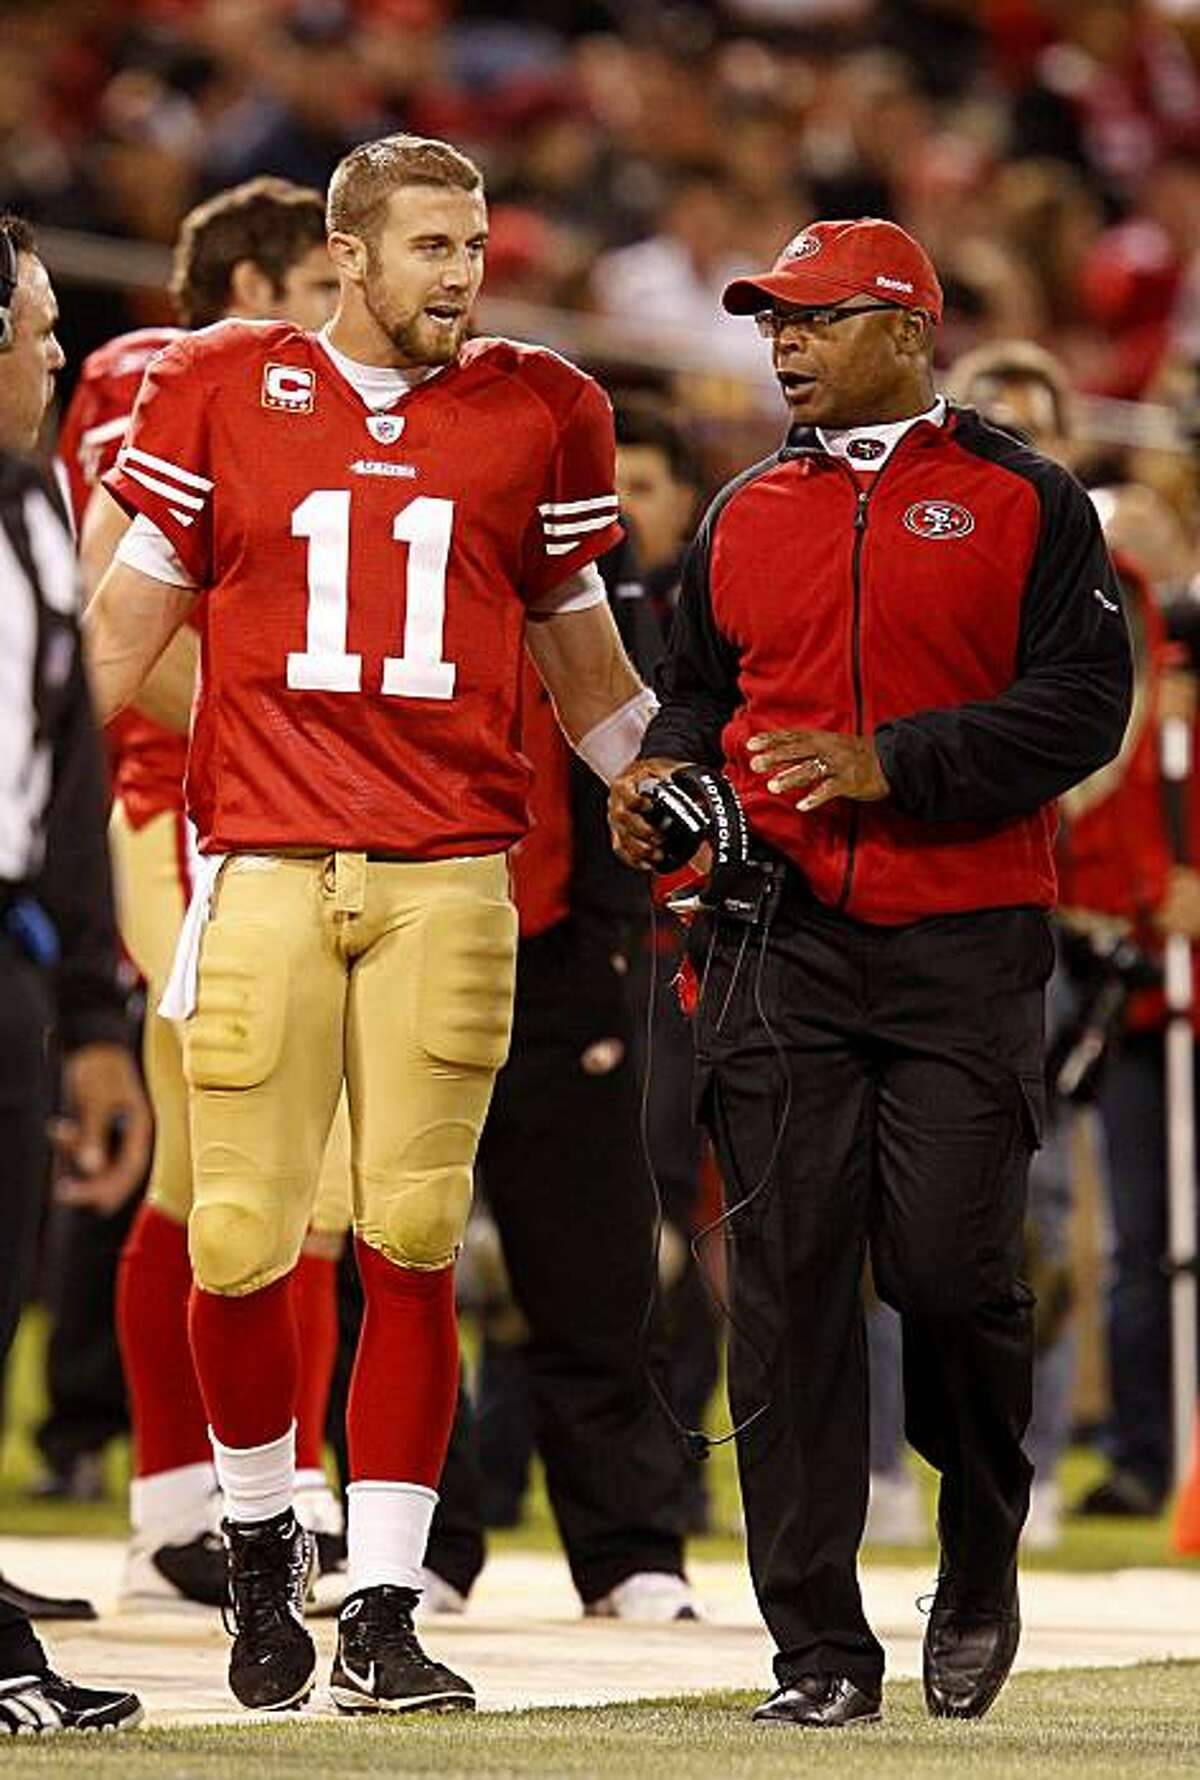 San Francisco 49ers quarterback Alex Smith and head coach Mike Singletary had a discussion on the sidelines, during the Philadelphia Eagles game, after Smith's fumble led to an Eagle score.